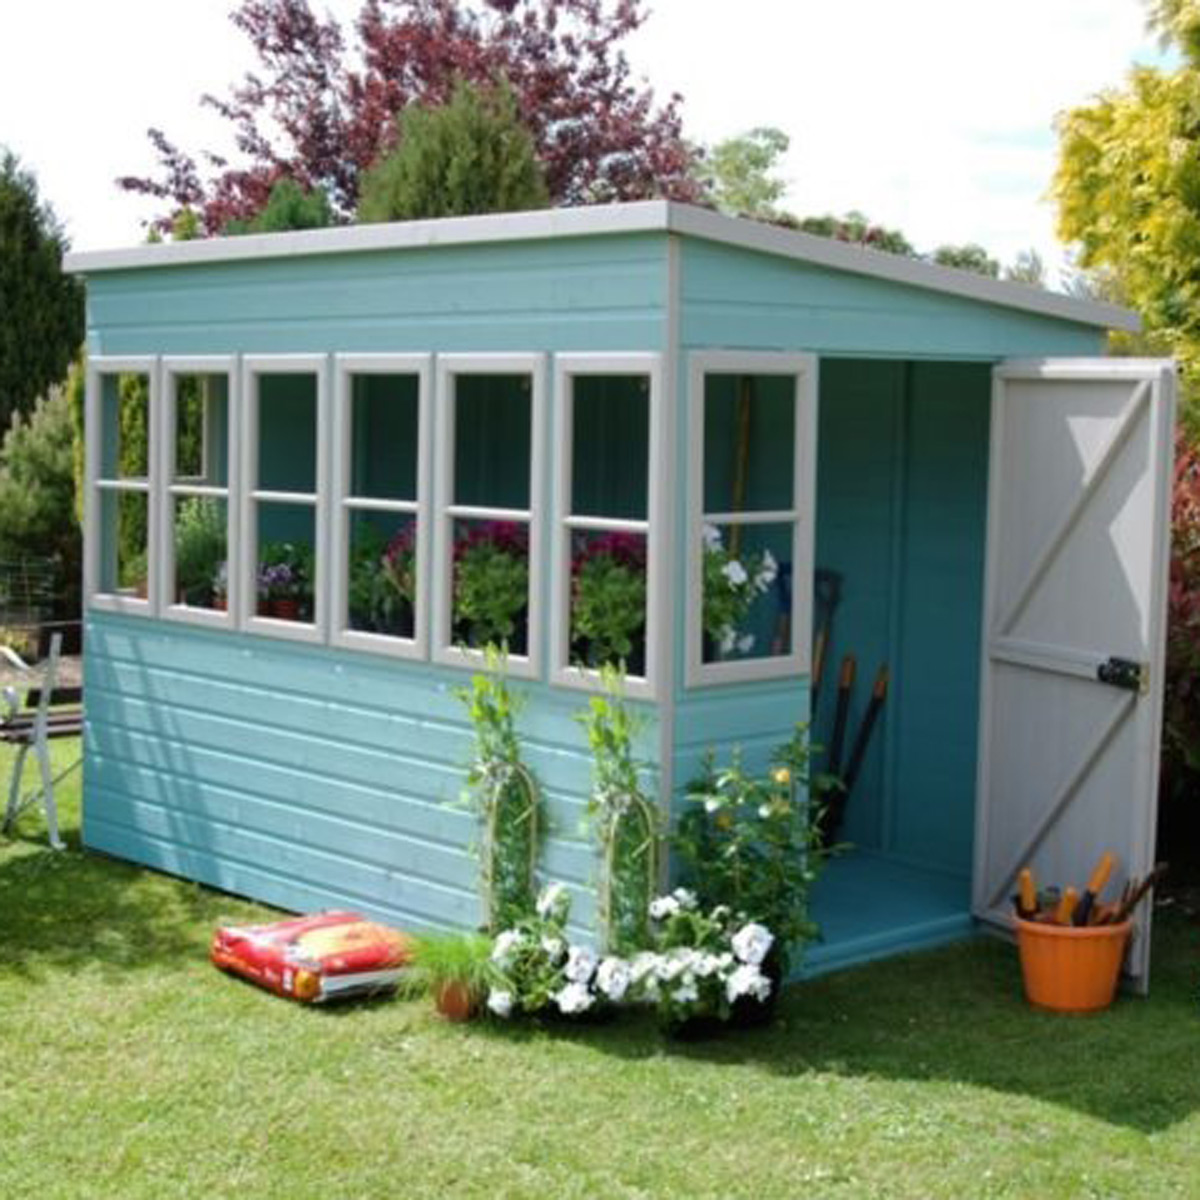 8 of the best garden sheds gardening accessories home for Best garden shed designs